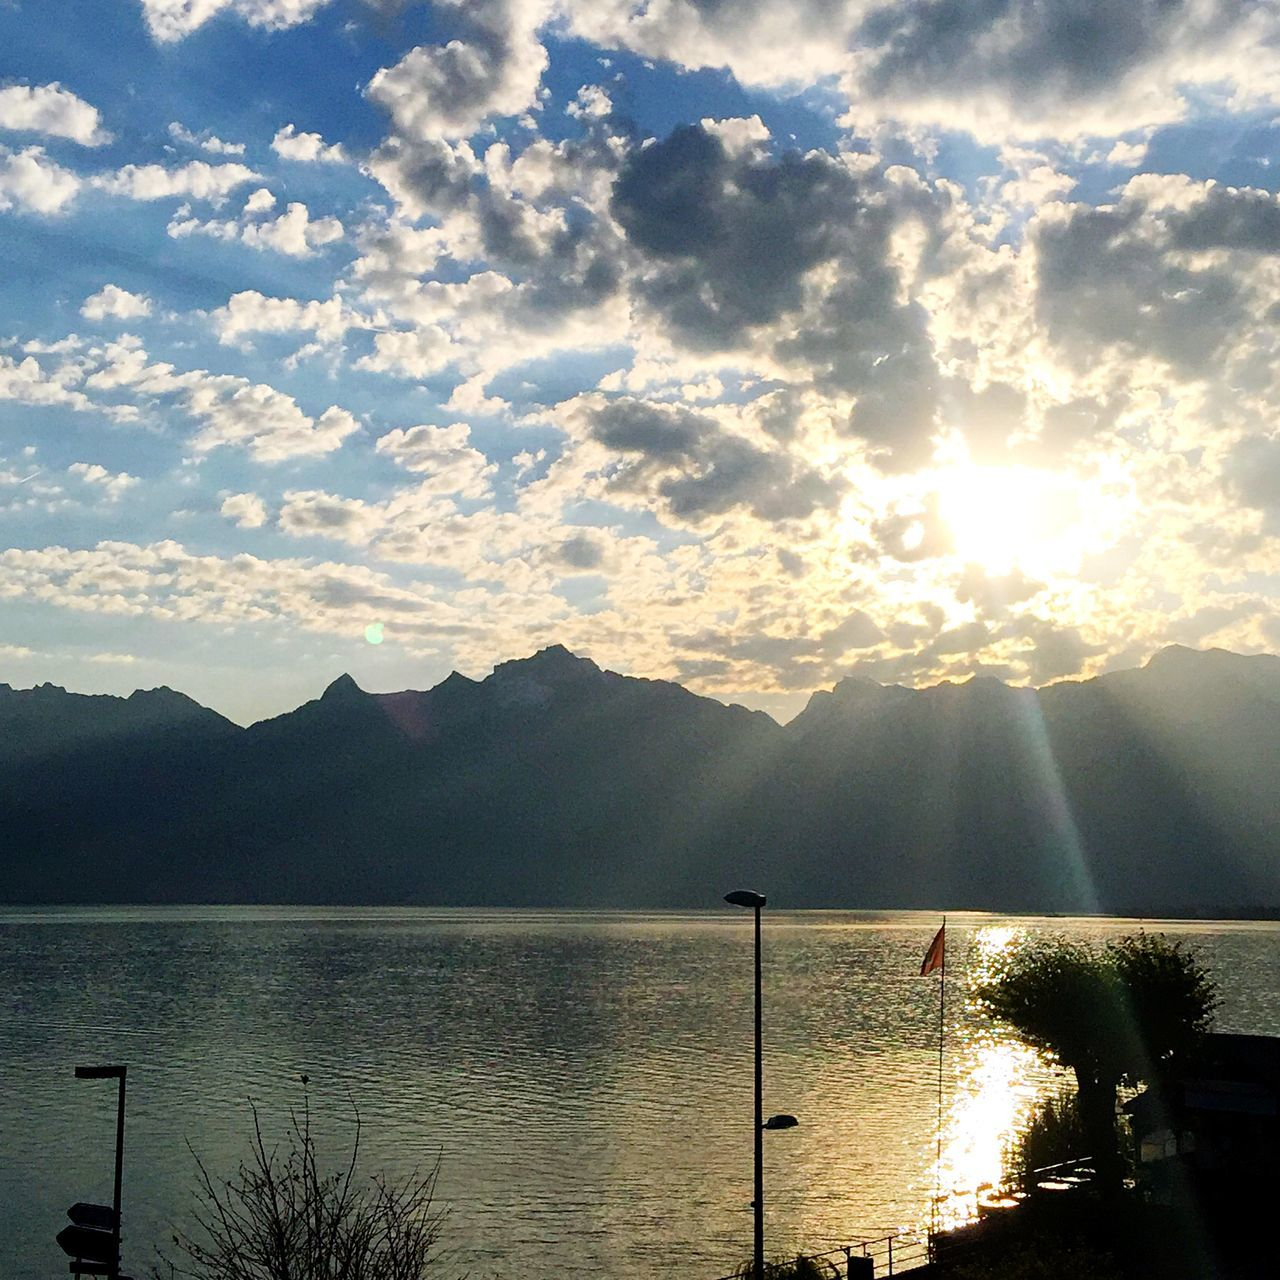 Sunlight Falling On Silhouette Mountains And Lake